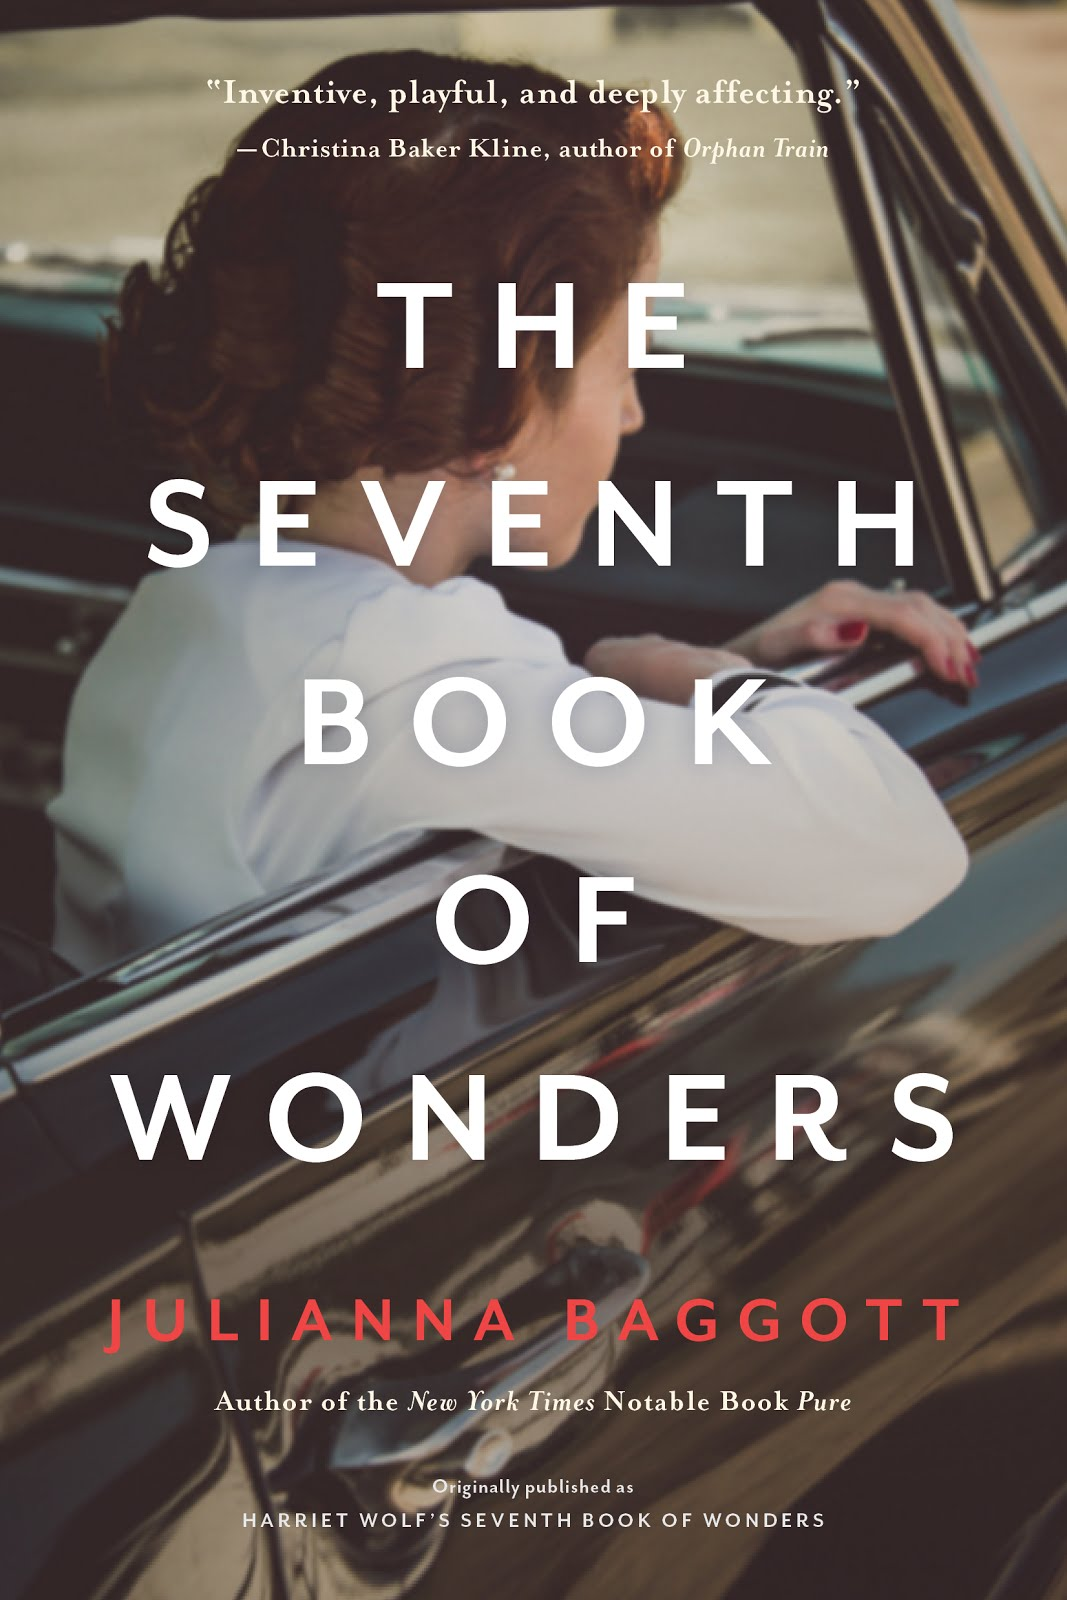 The 7th Book of Wonders